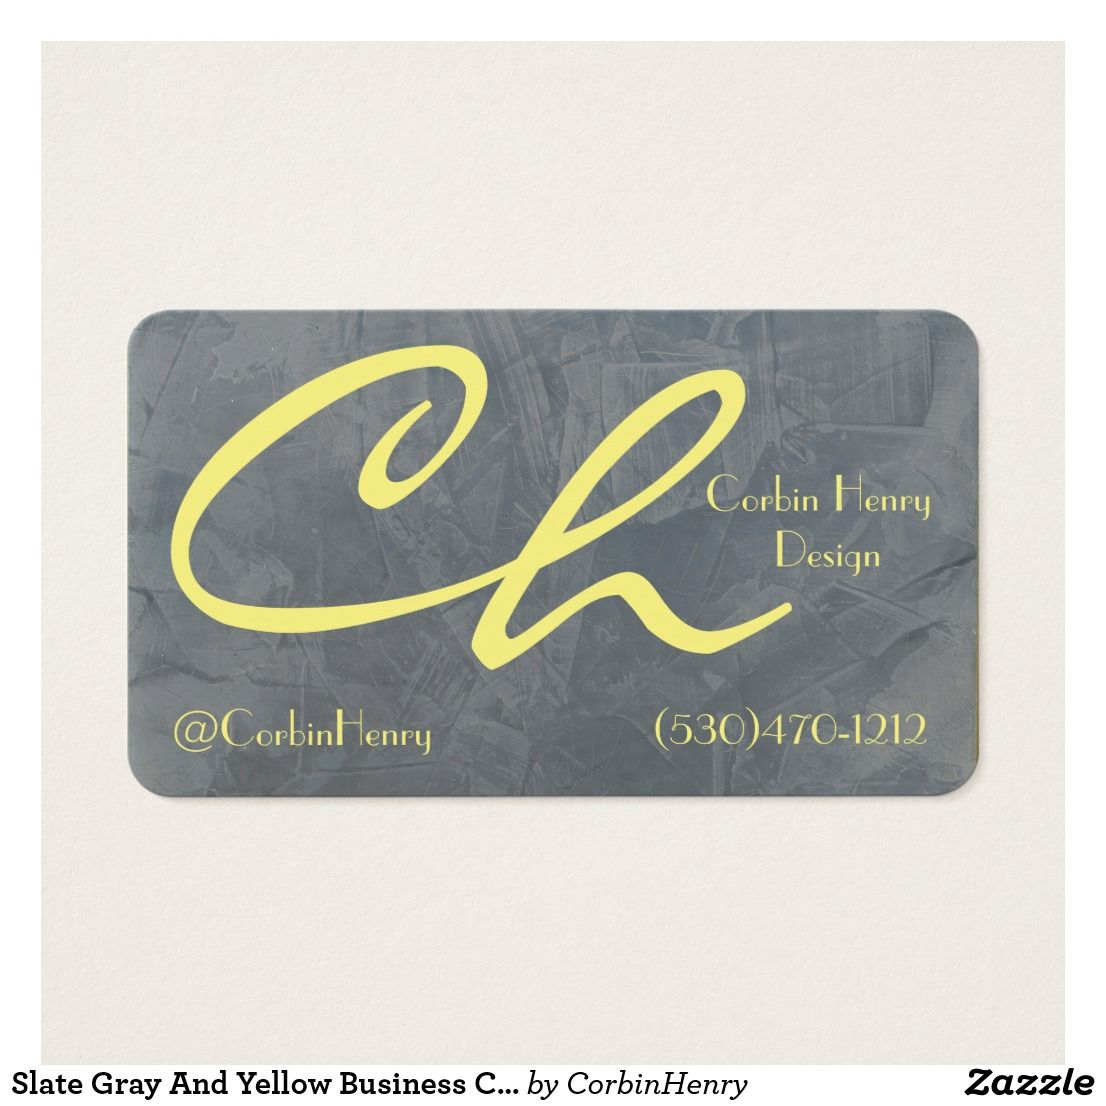 Slate Gray And Yellow Business Cards | Pinterest